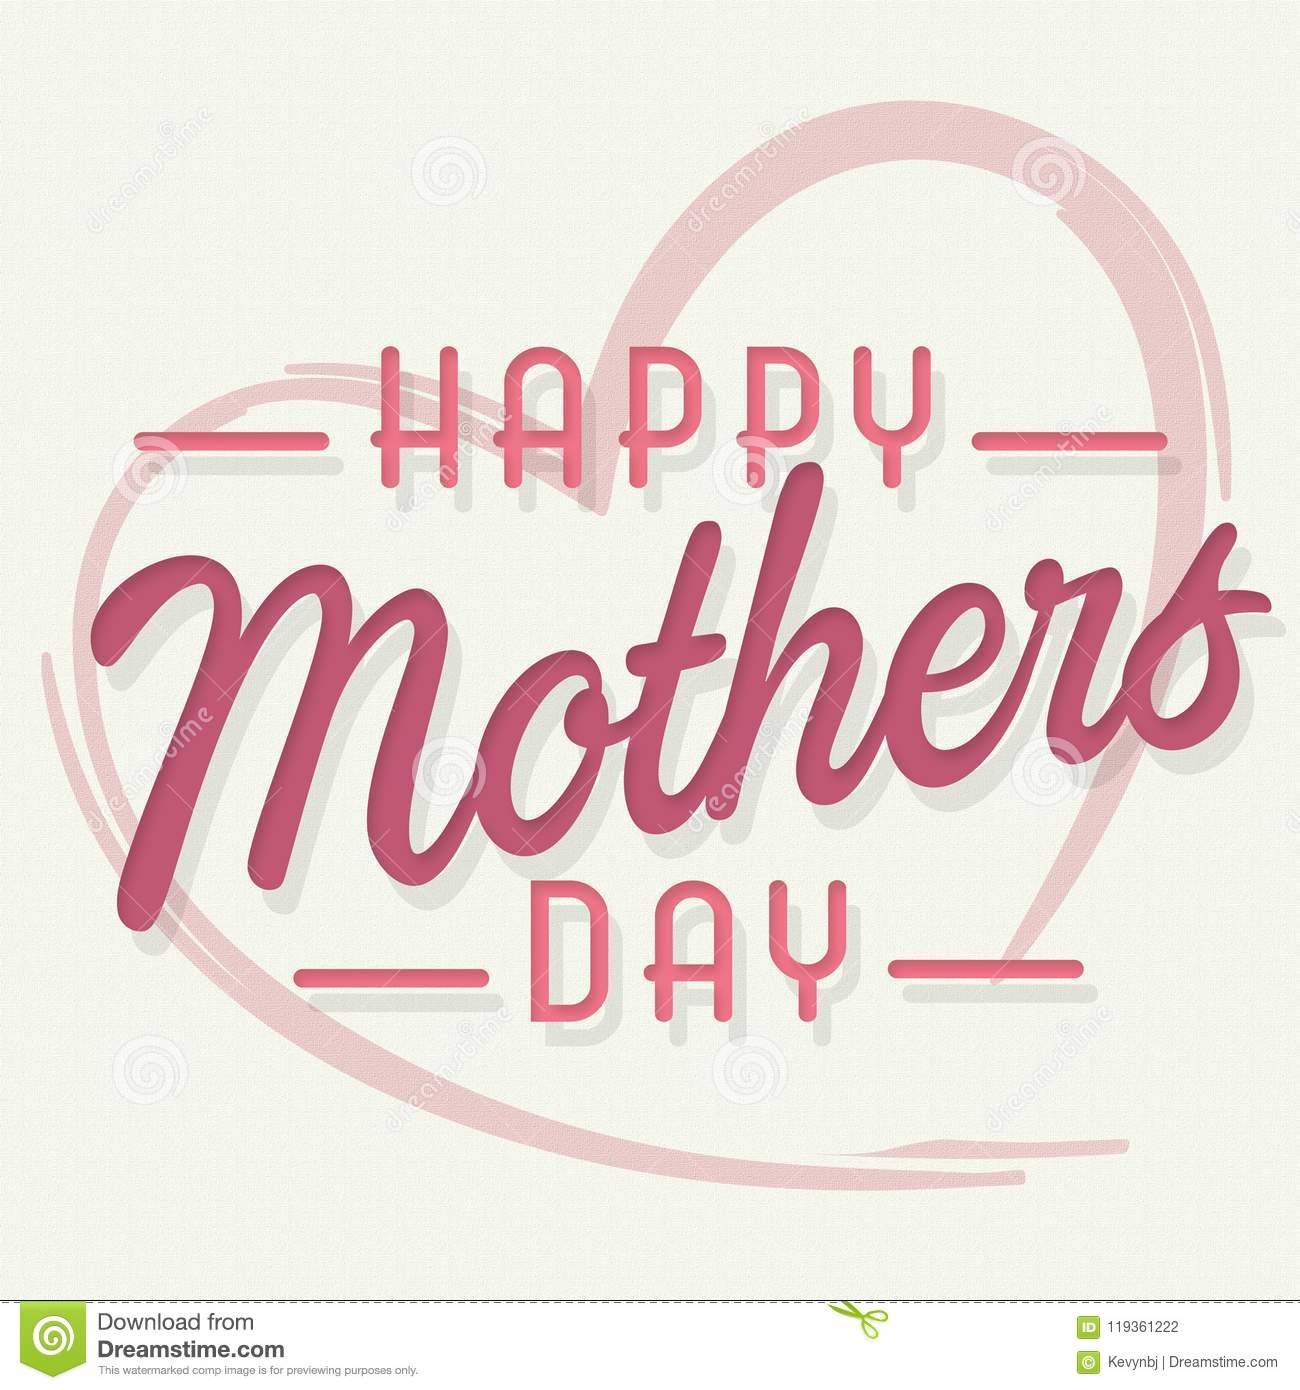 Happy Mothers Day Art Card with Heart Pink